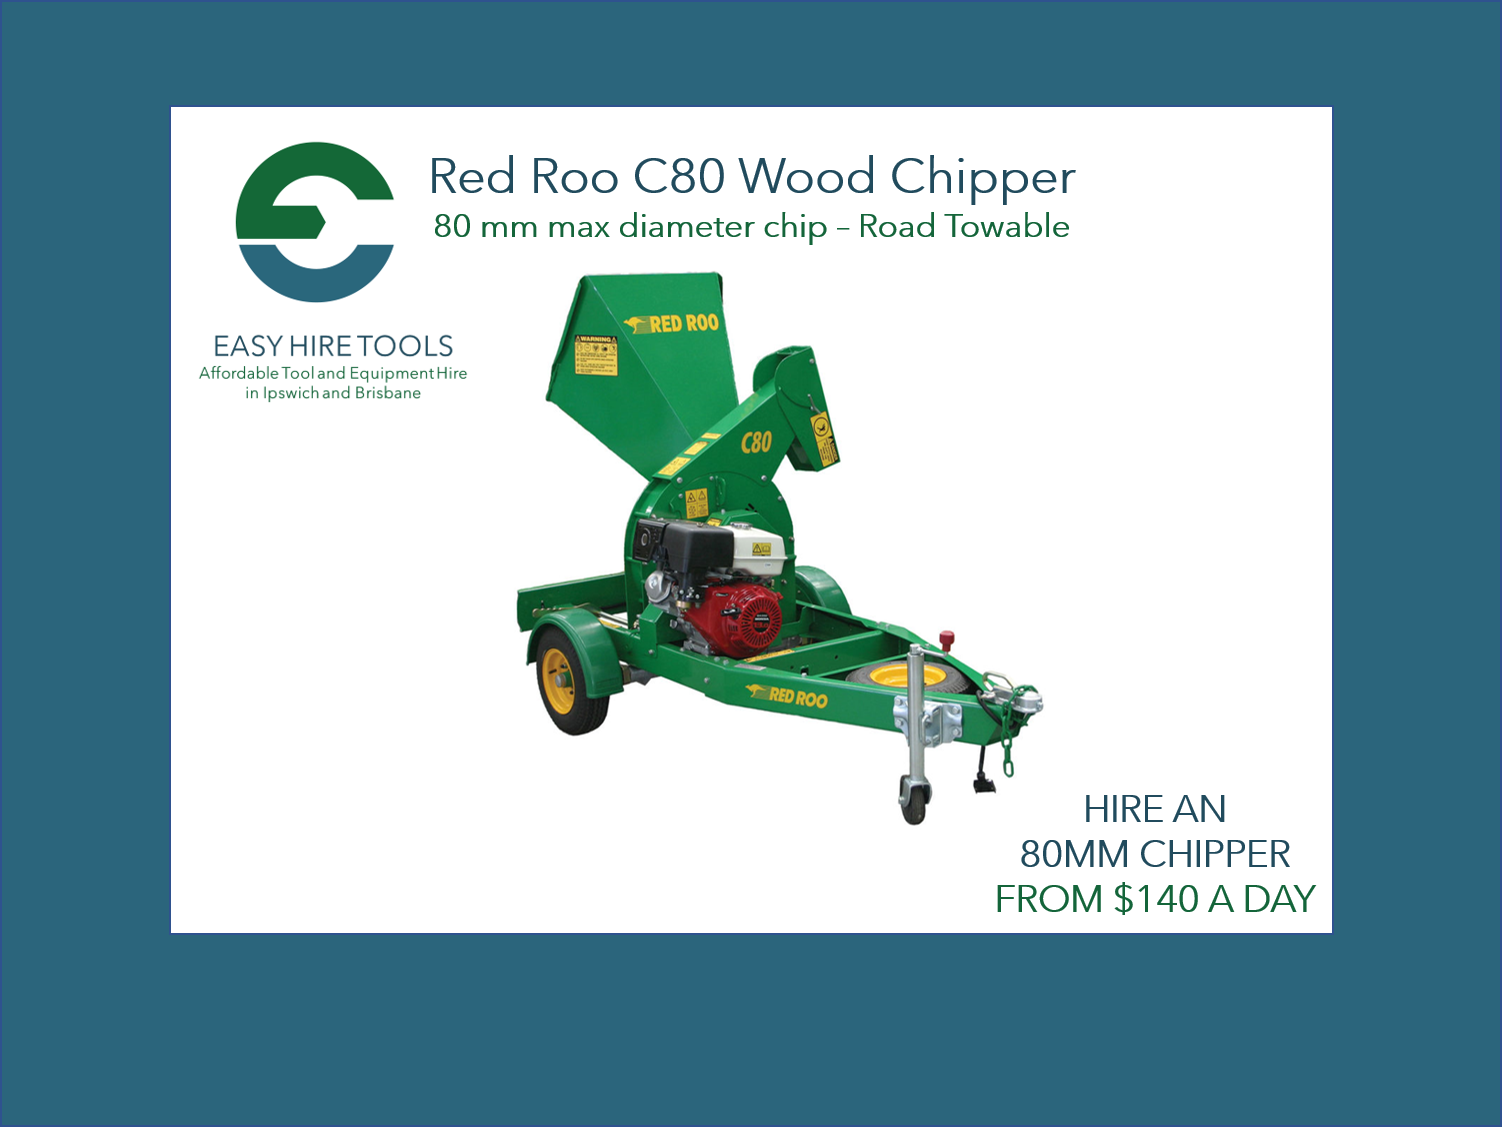 Hire 80mm Wood Chipper - Red Roo C80 - Road Towable